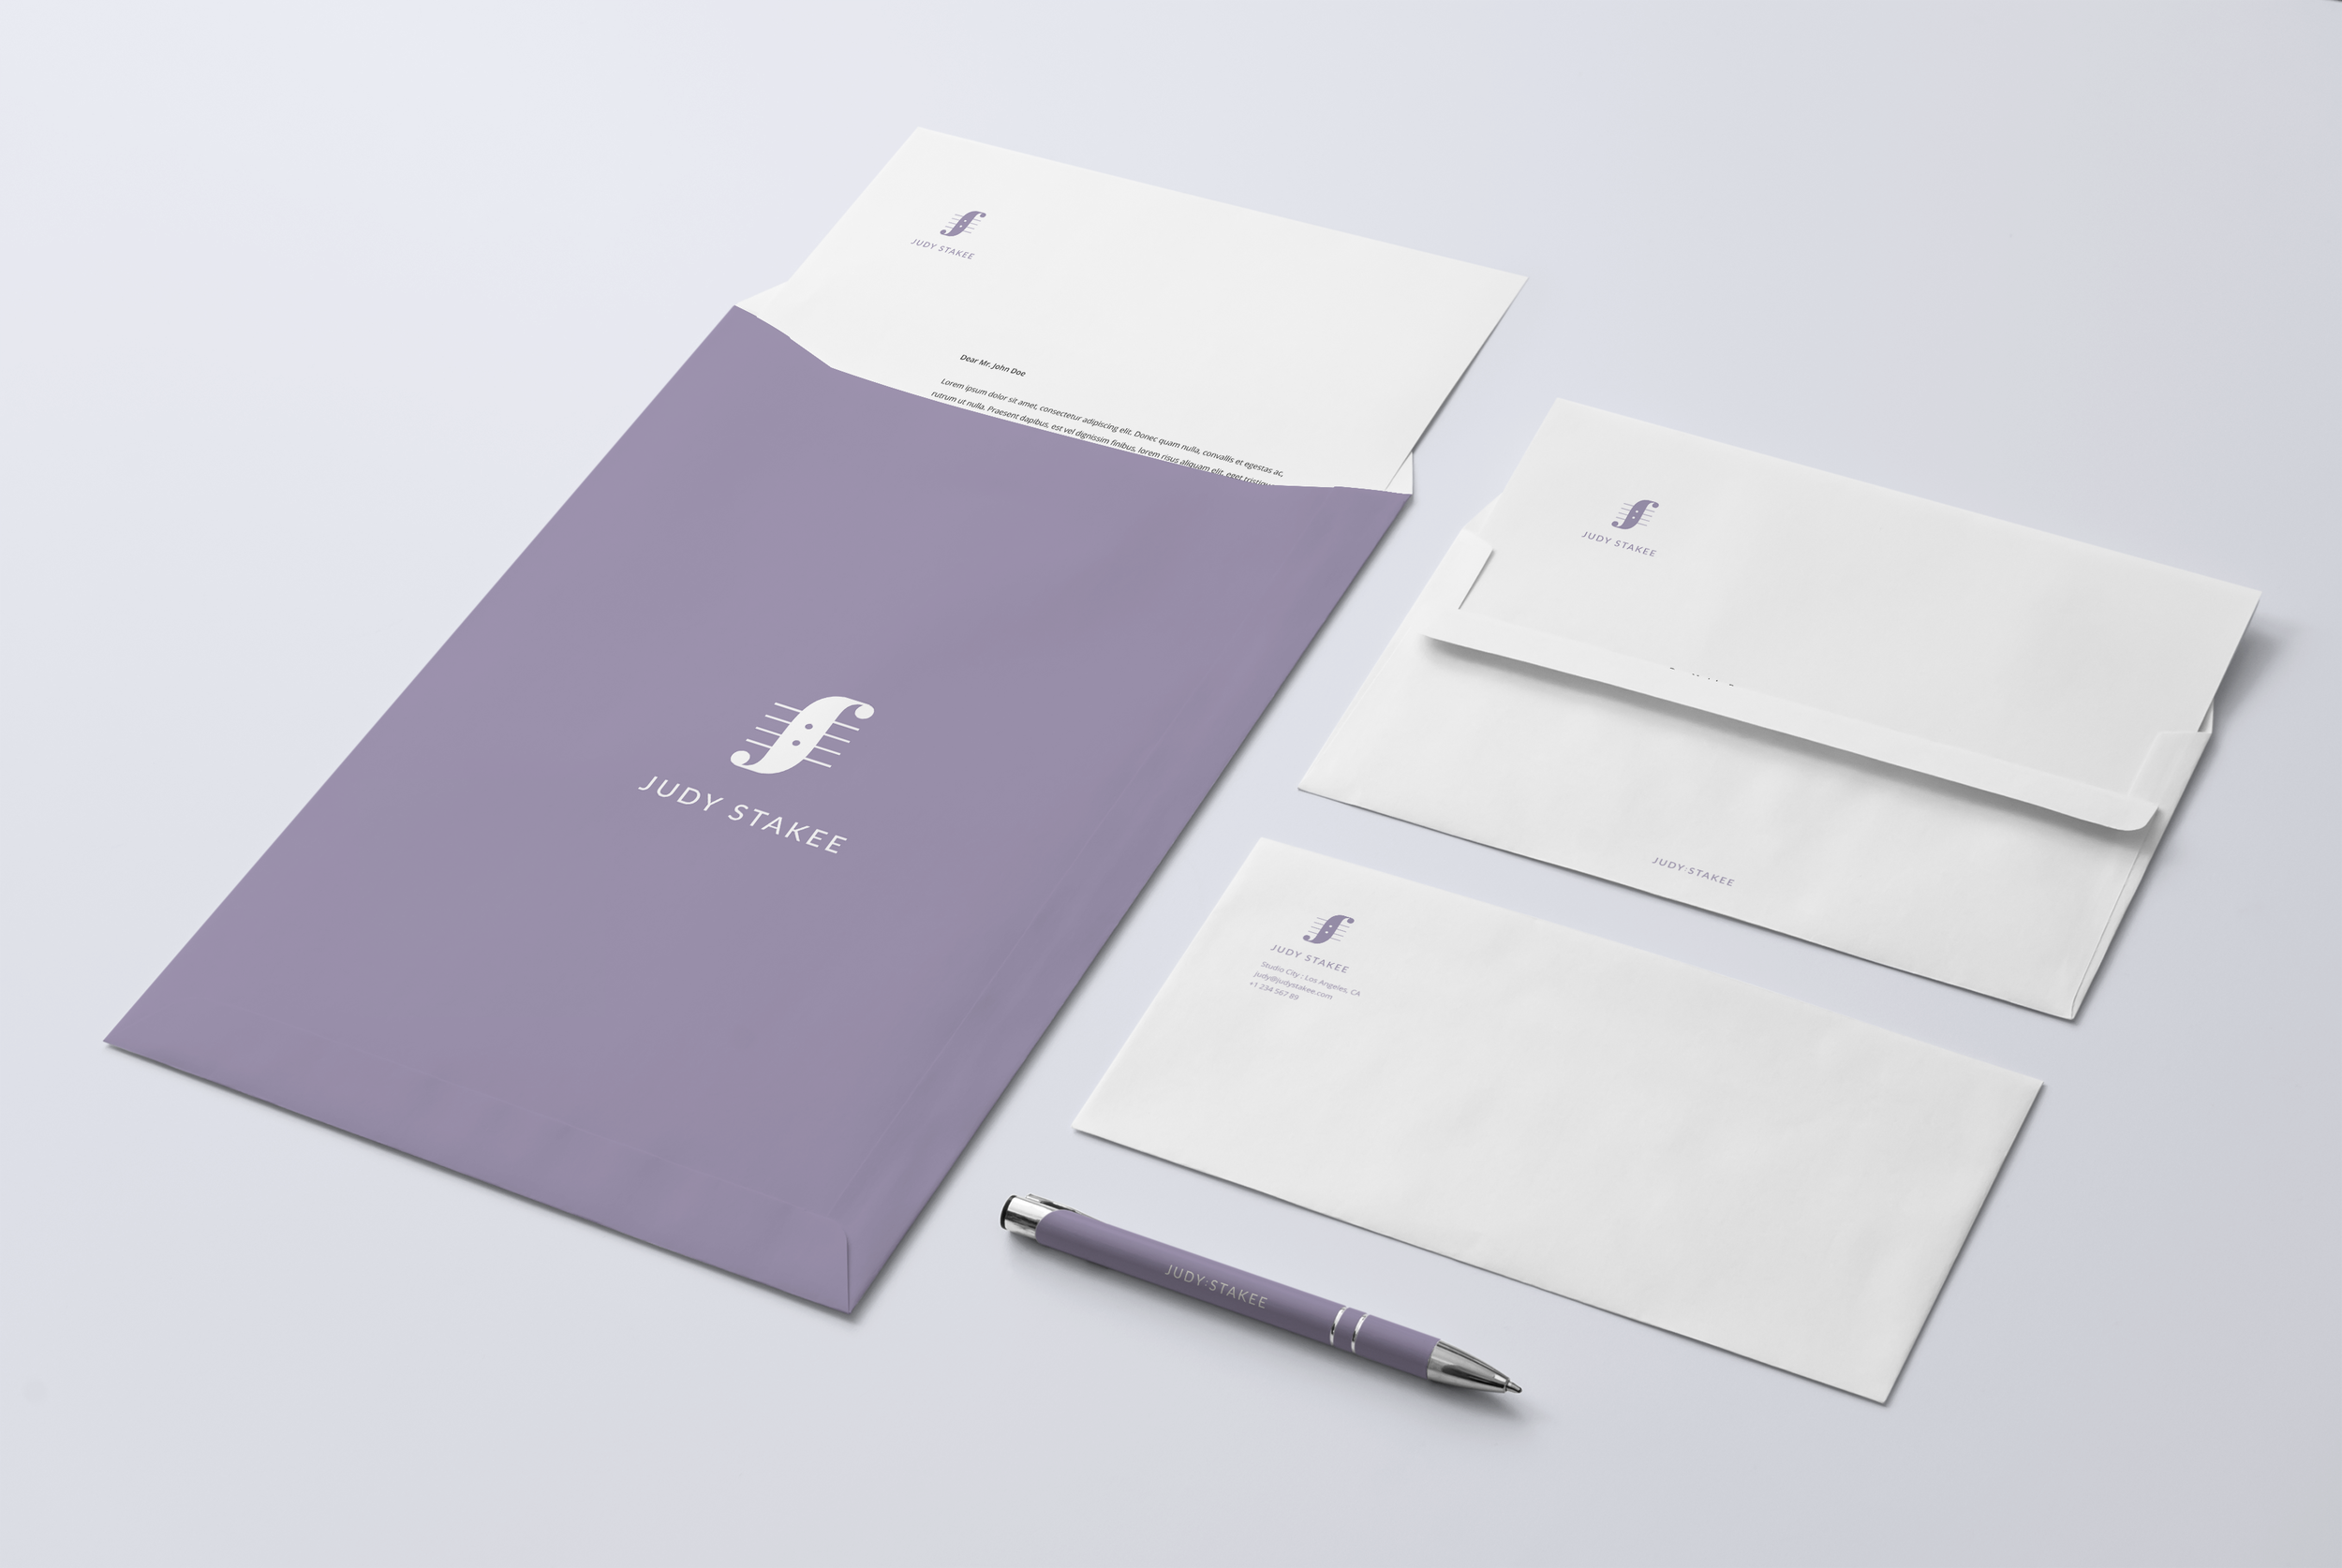 judy-stakee-brand-identity-04.png